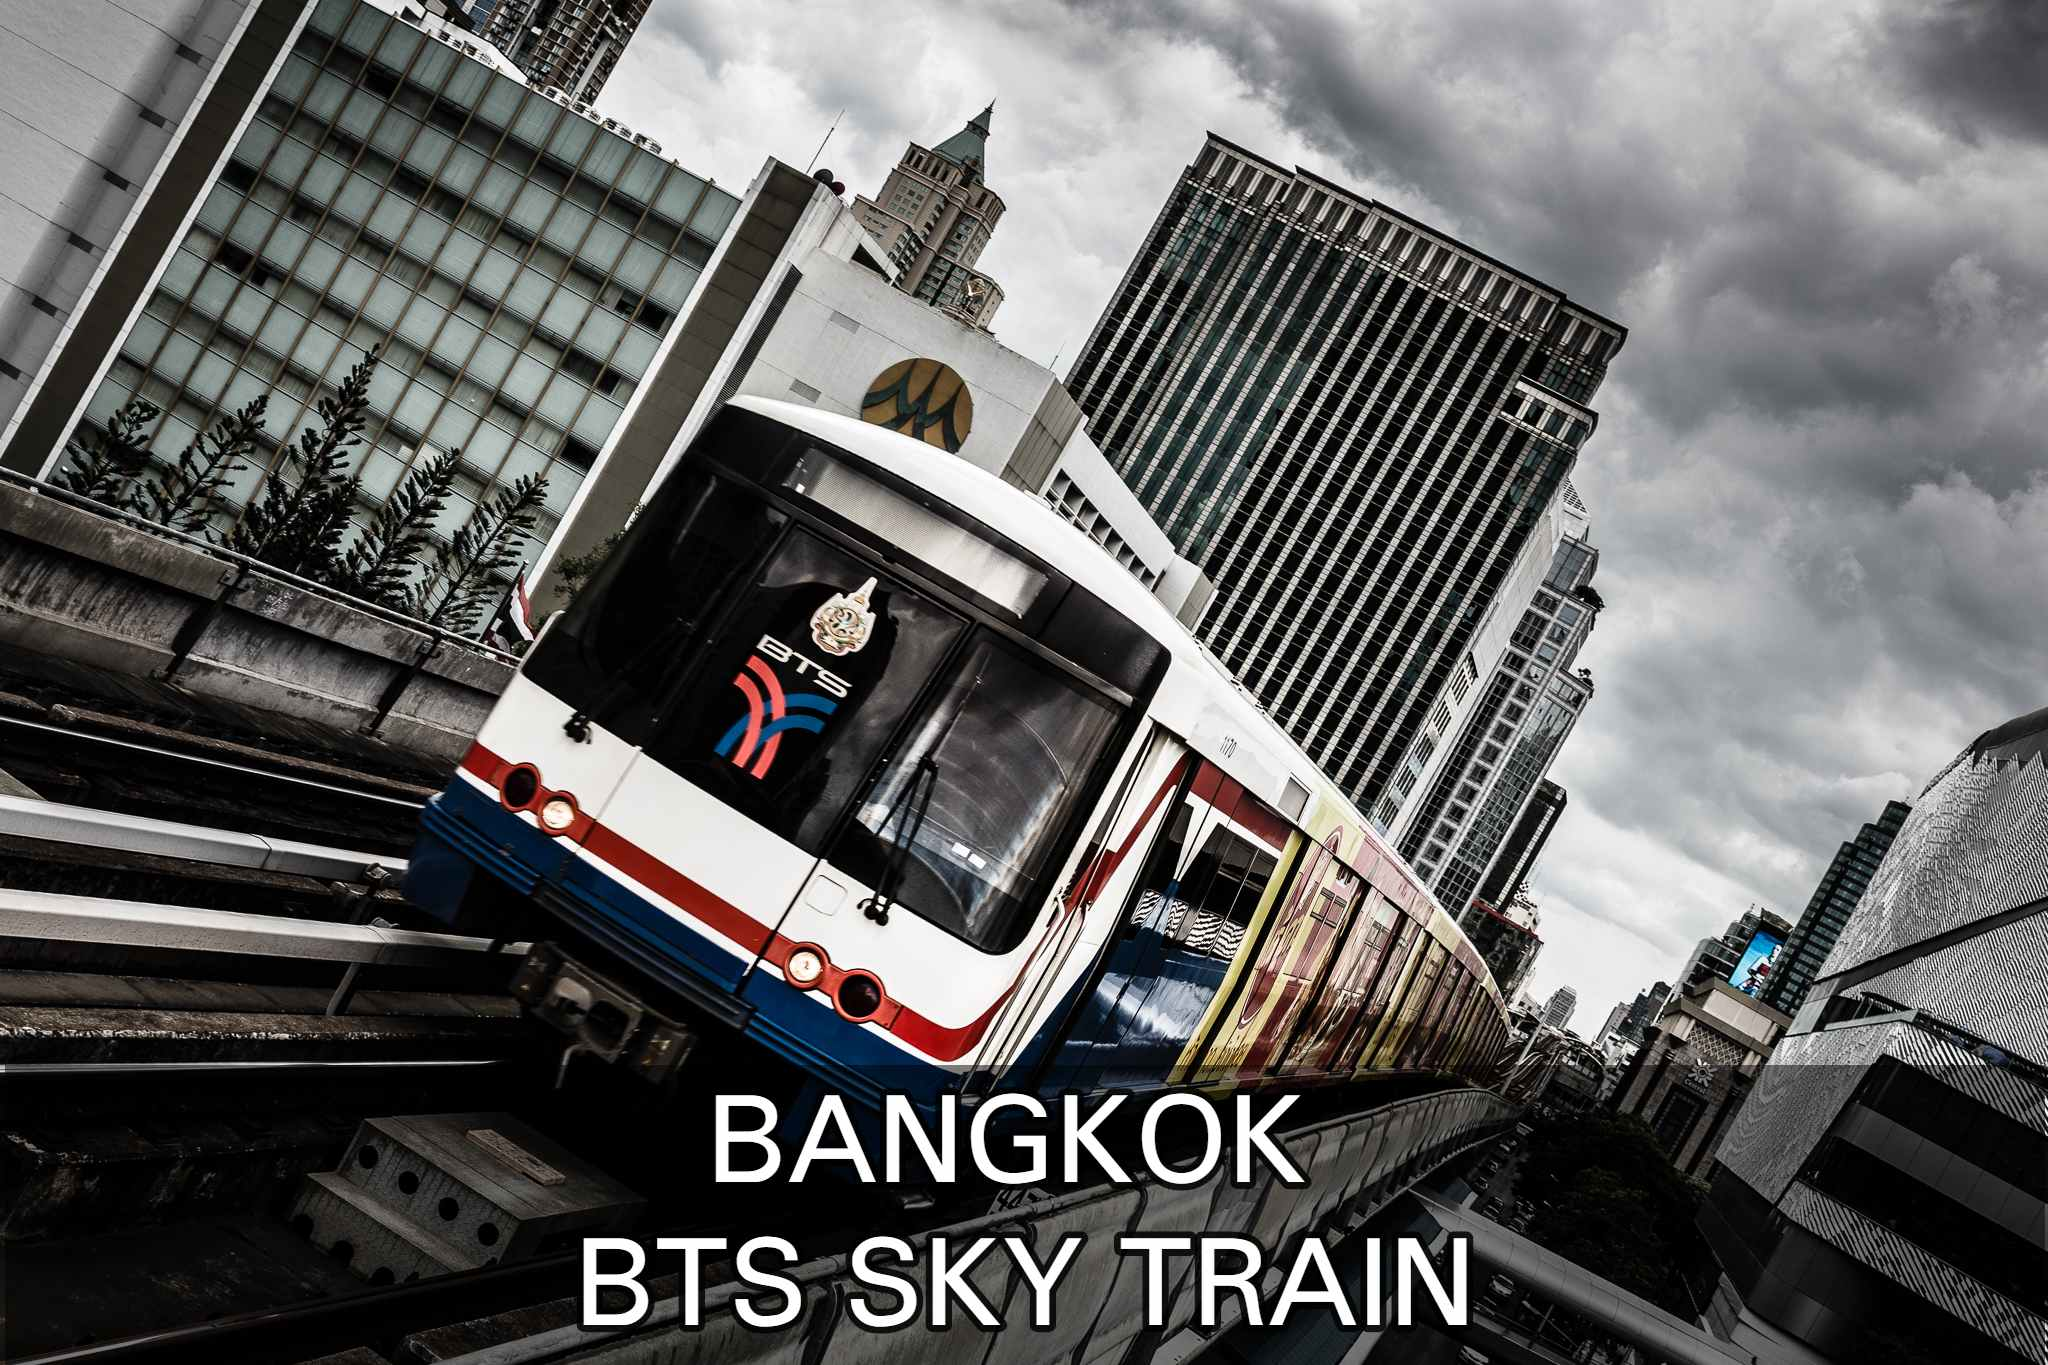 Lees hier verder over de BTS Sky Train in Bangkok